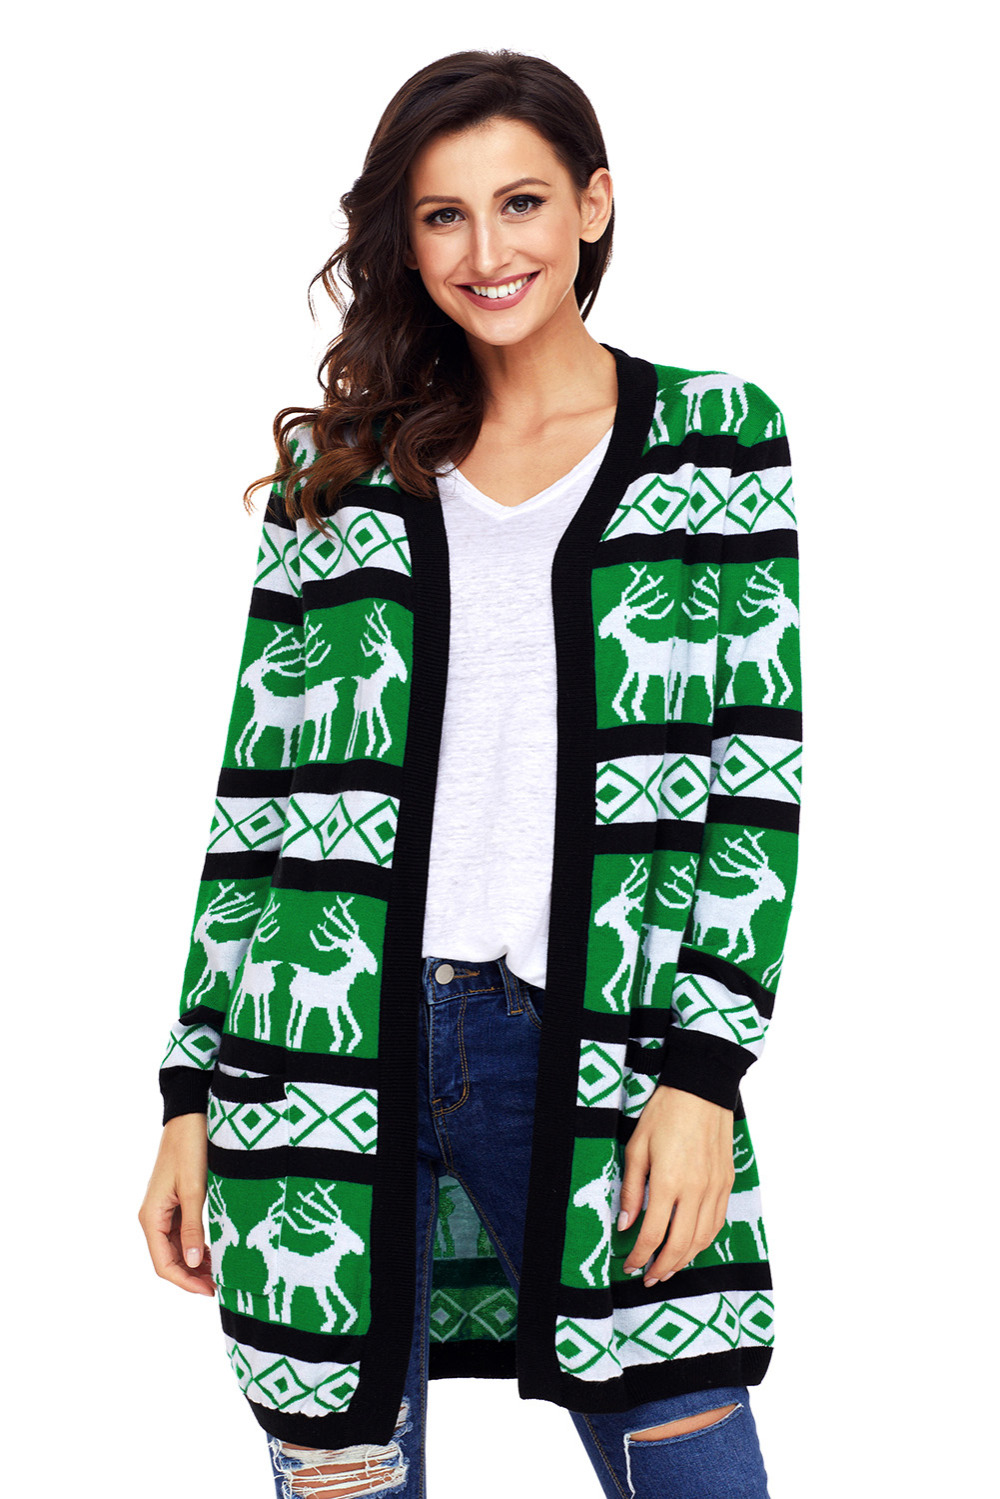 2018 New Arrival Winter Womens Casual Black Green Reindeer Geometric Christmas Cardigan LGY27806